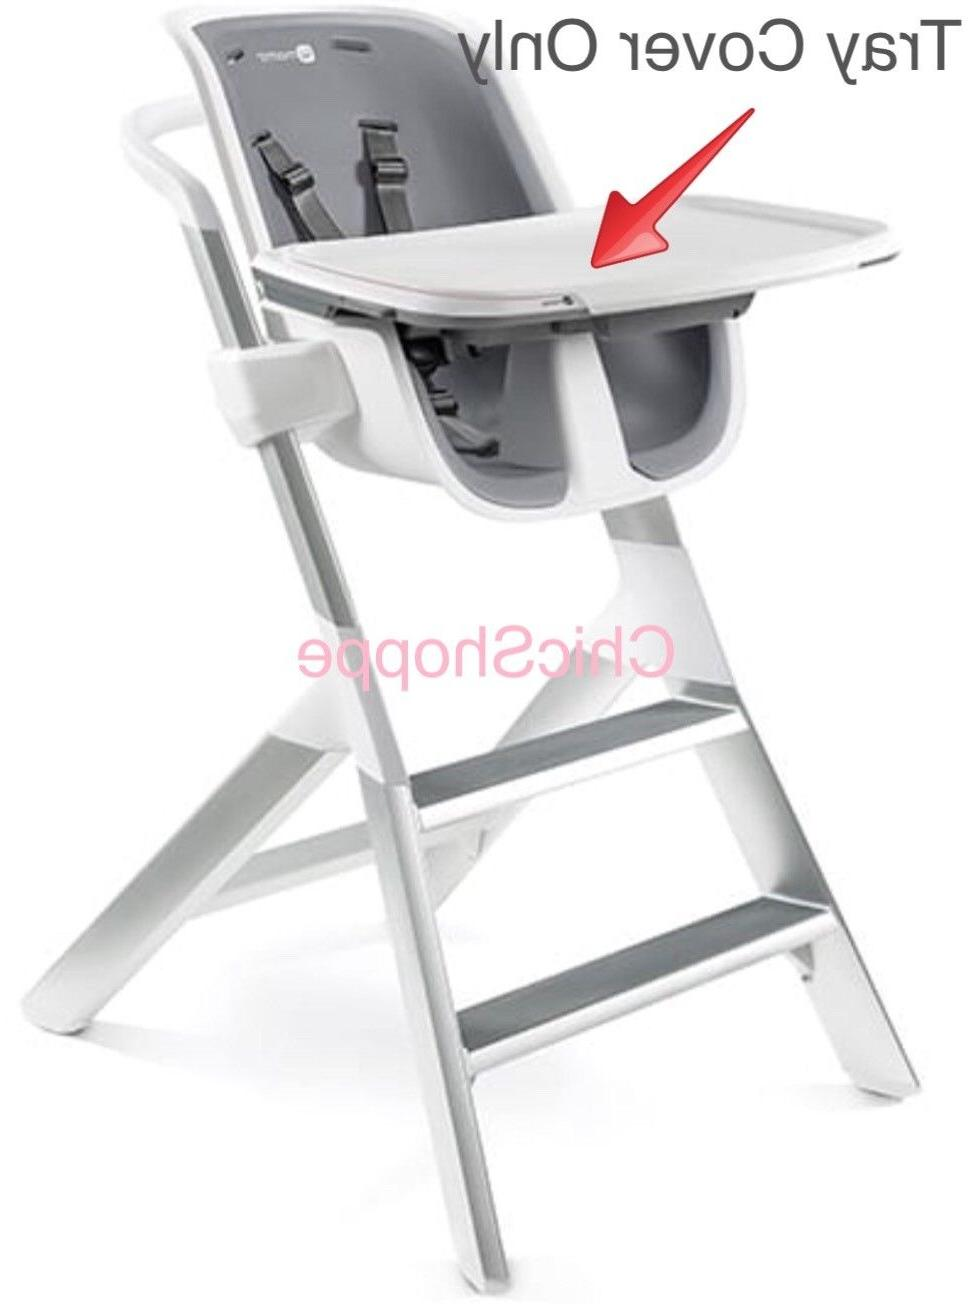 New! 4MOMS High Chair Replacement Tray Liner - Factory Exclu